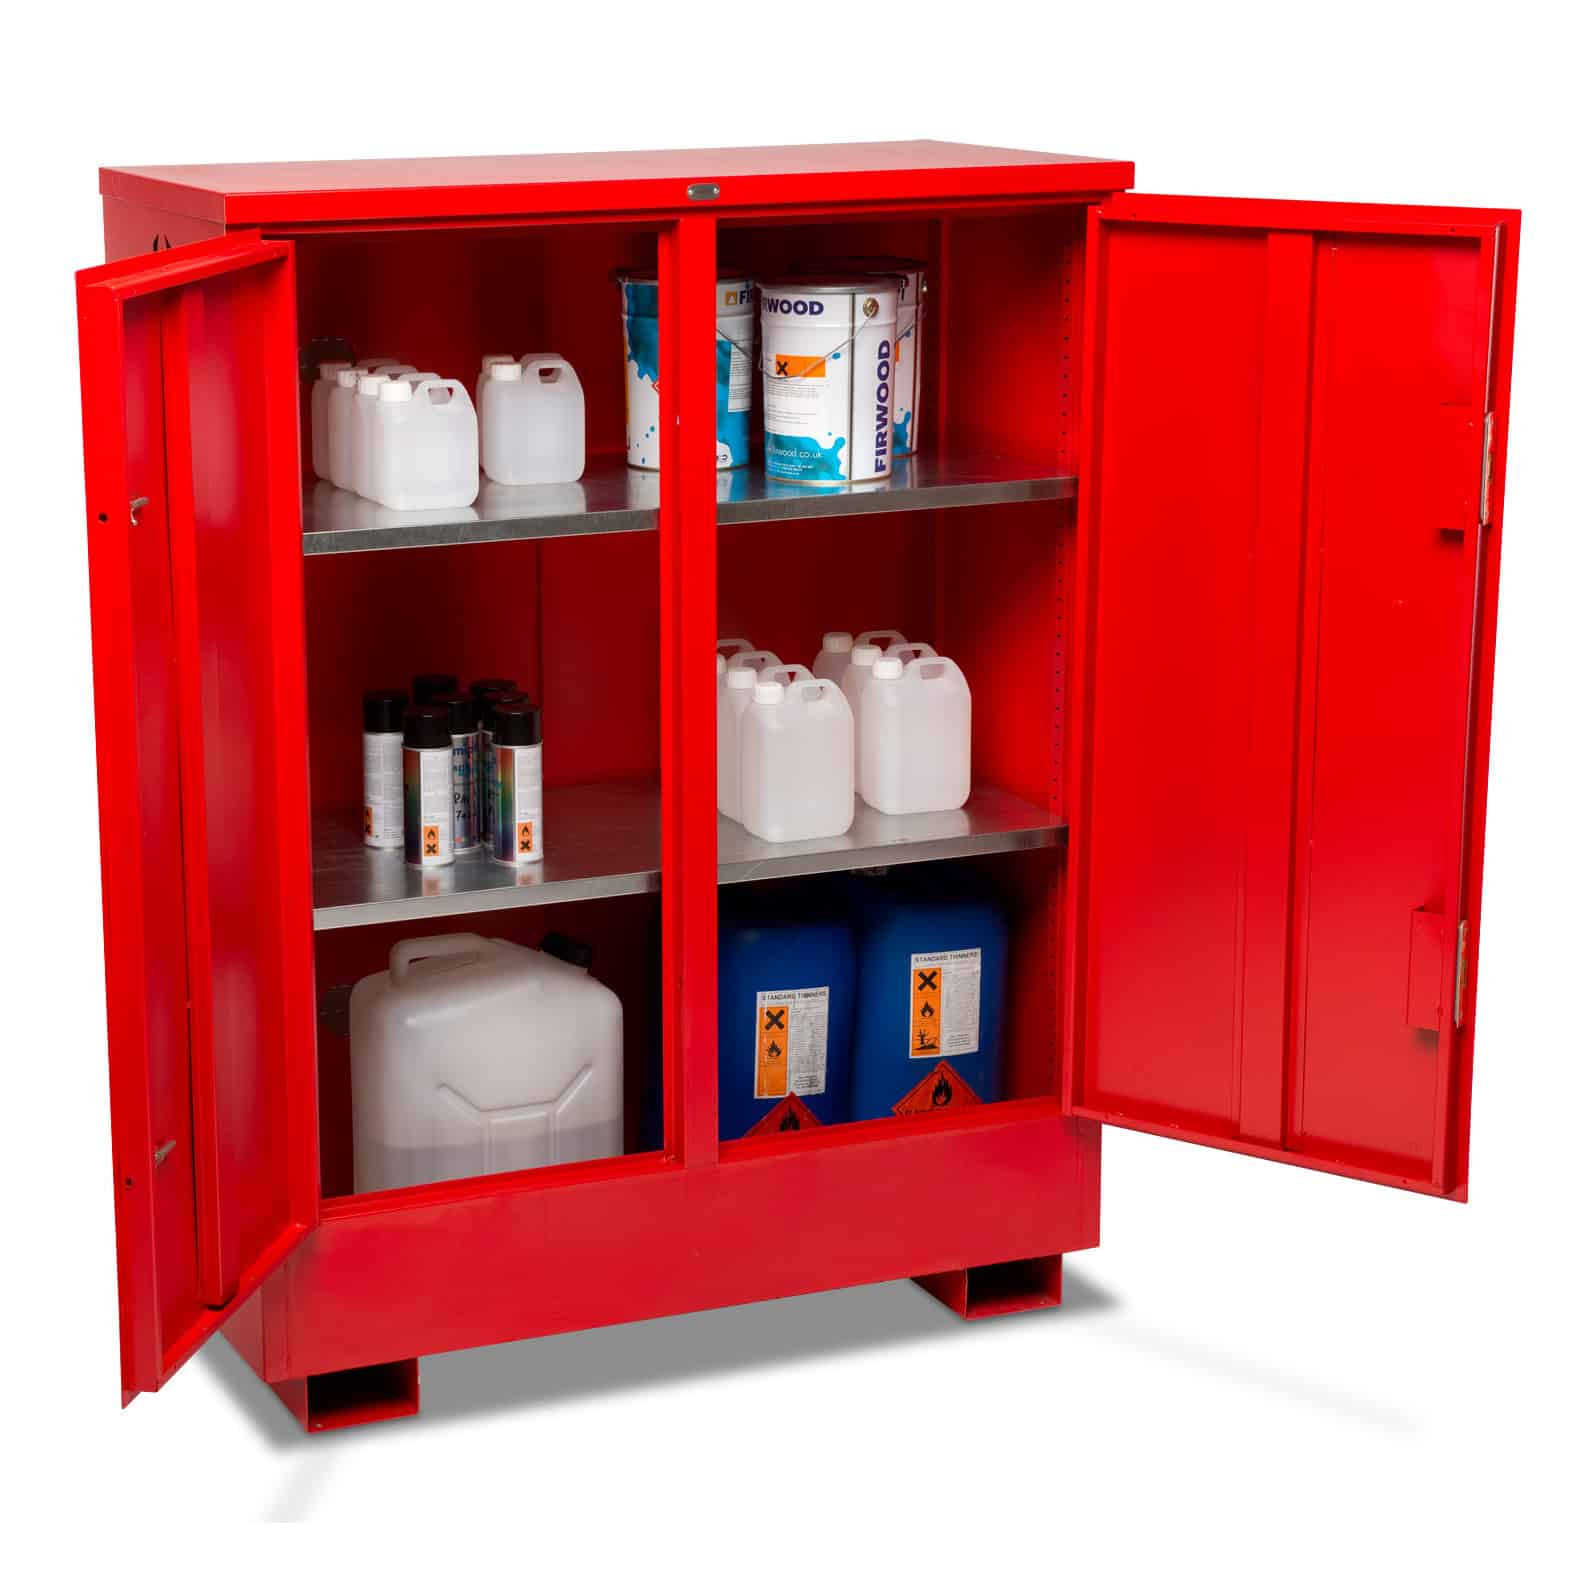 Armorgard Flamstor Hazardous Storage Cabinets